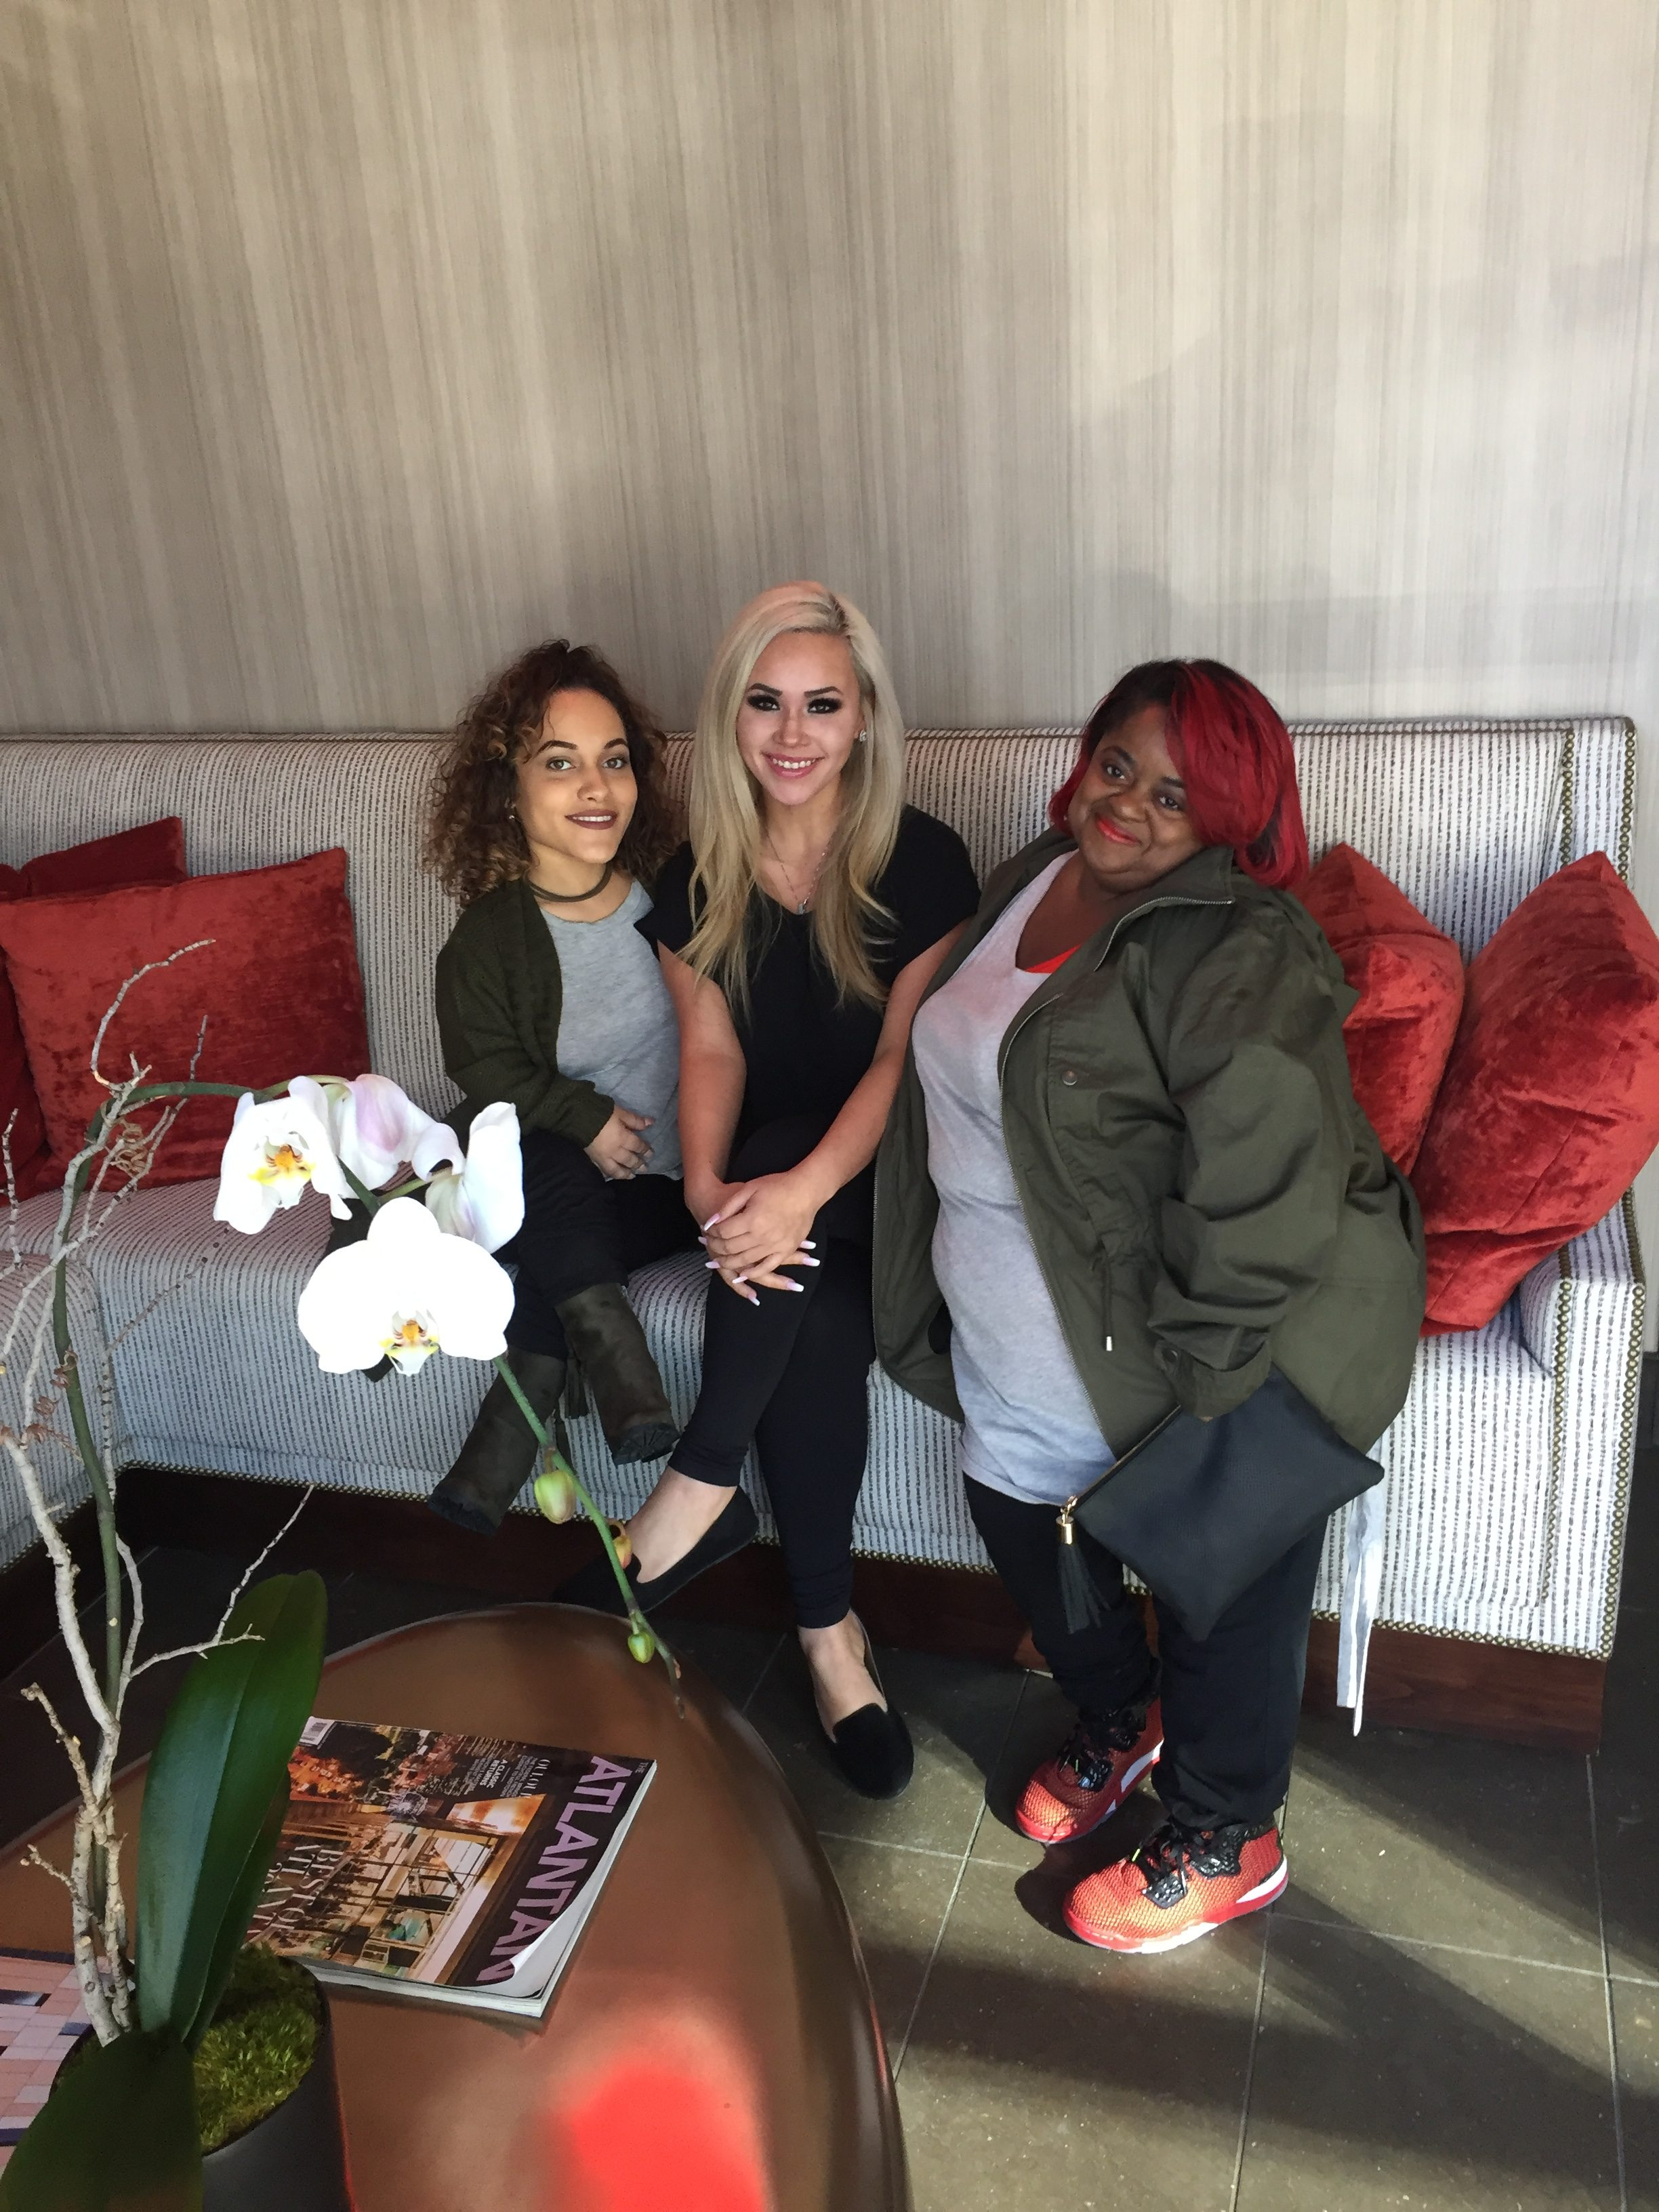 Atlanta Massage Center Photo Gallery Celebrity Visits